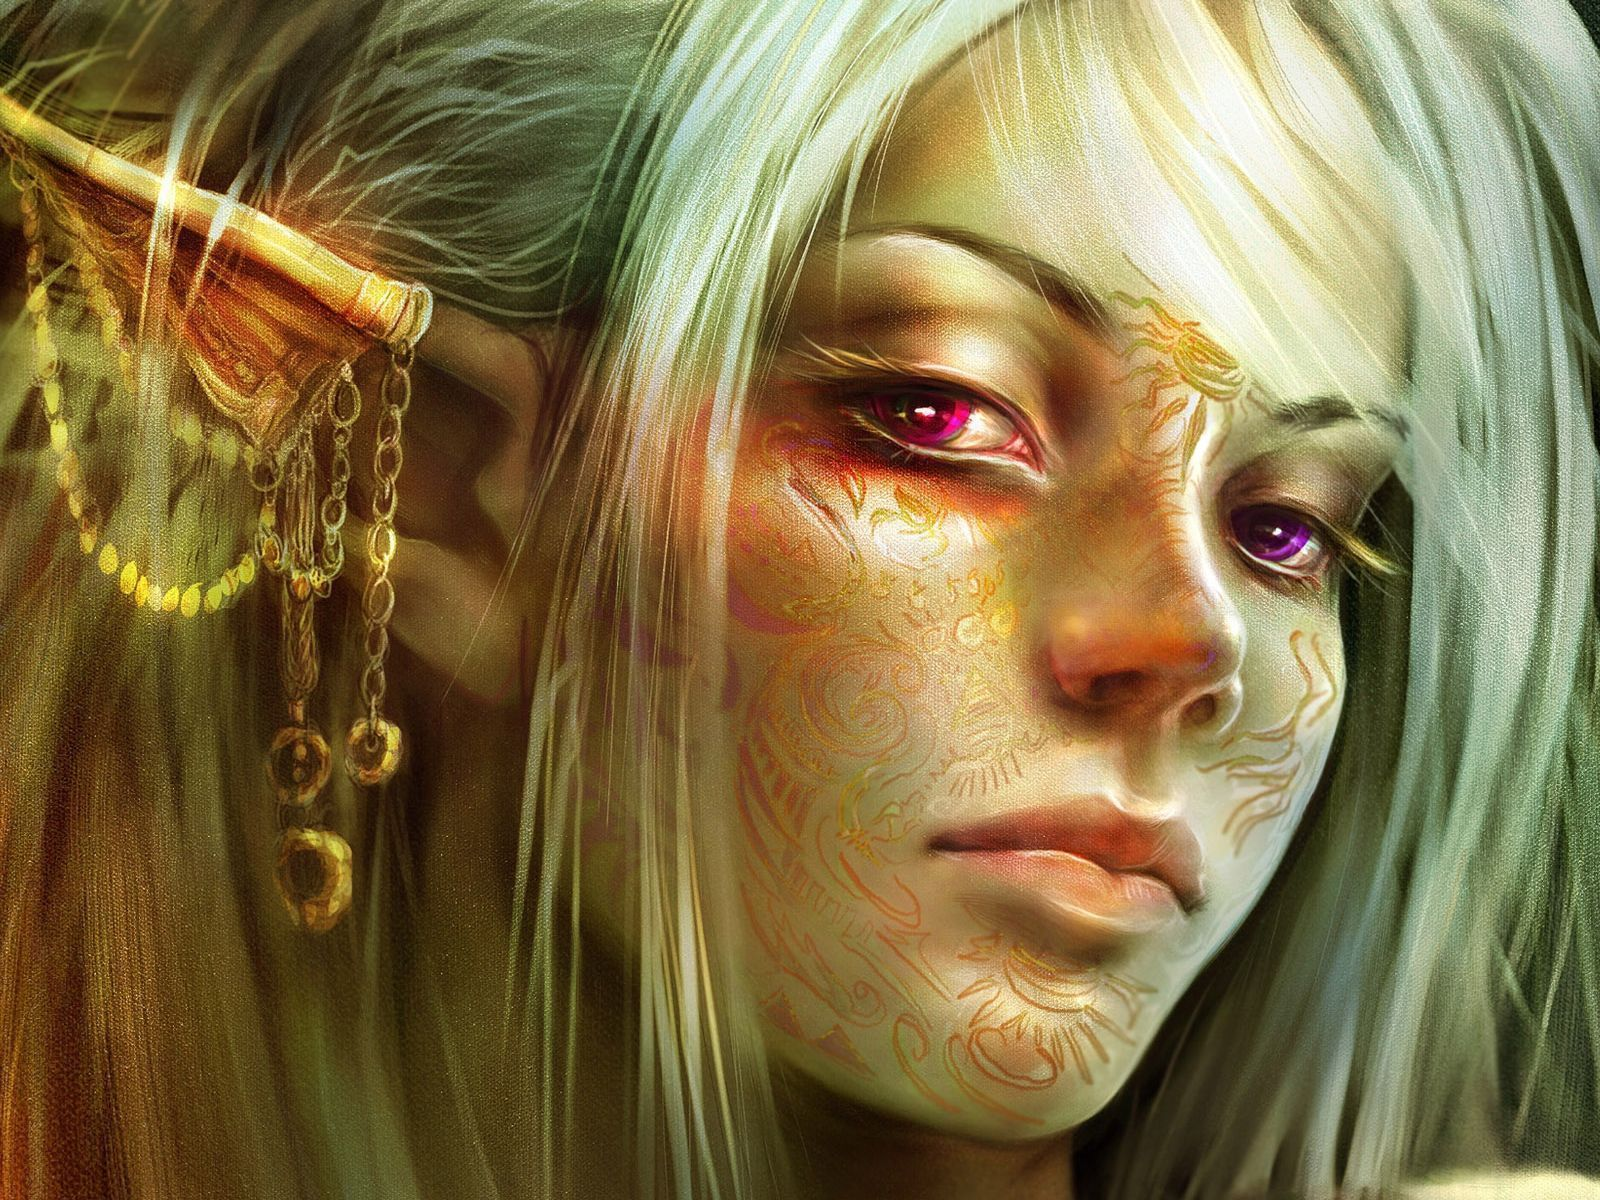 woman fantasy art elves HD Wallpaper